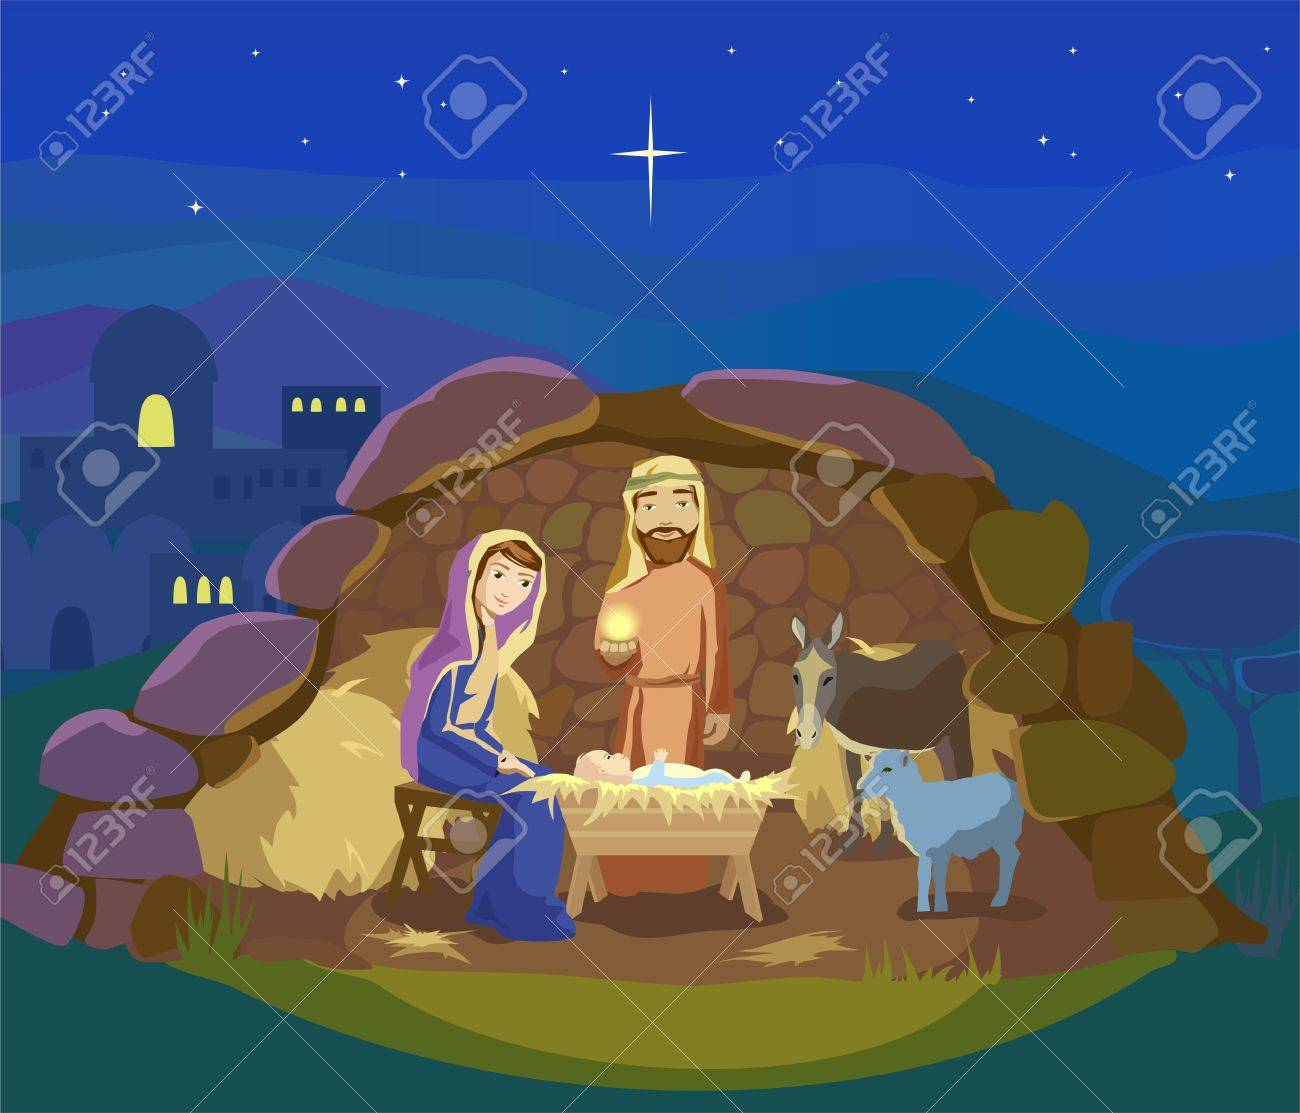 Christmas night. Birth of Jesus Christ in Bethlehem. Josef, Mary and the Baby in the manger. Sheep and donkey are looking at the King. Vector illustration - 69220795